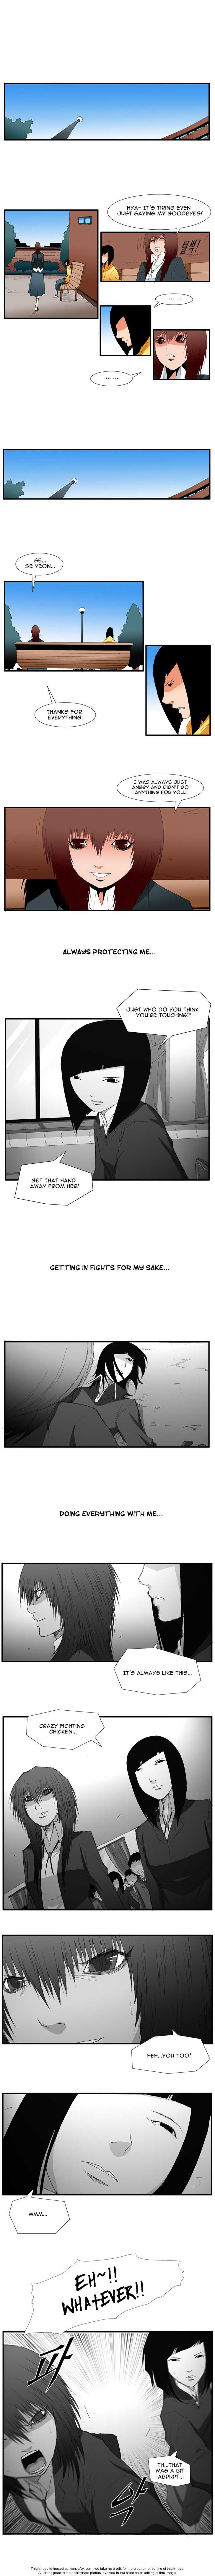 Trace 18 Page 4